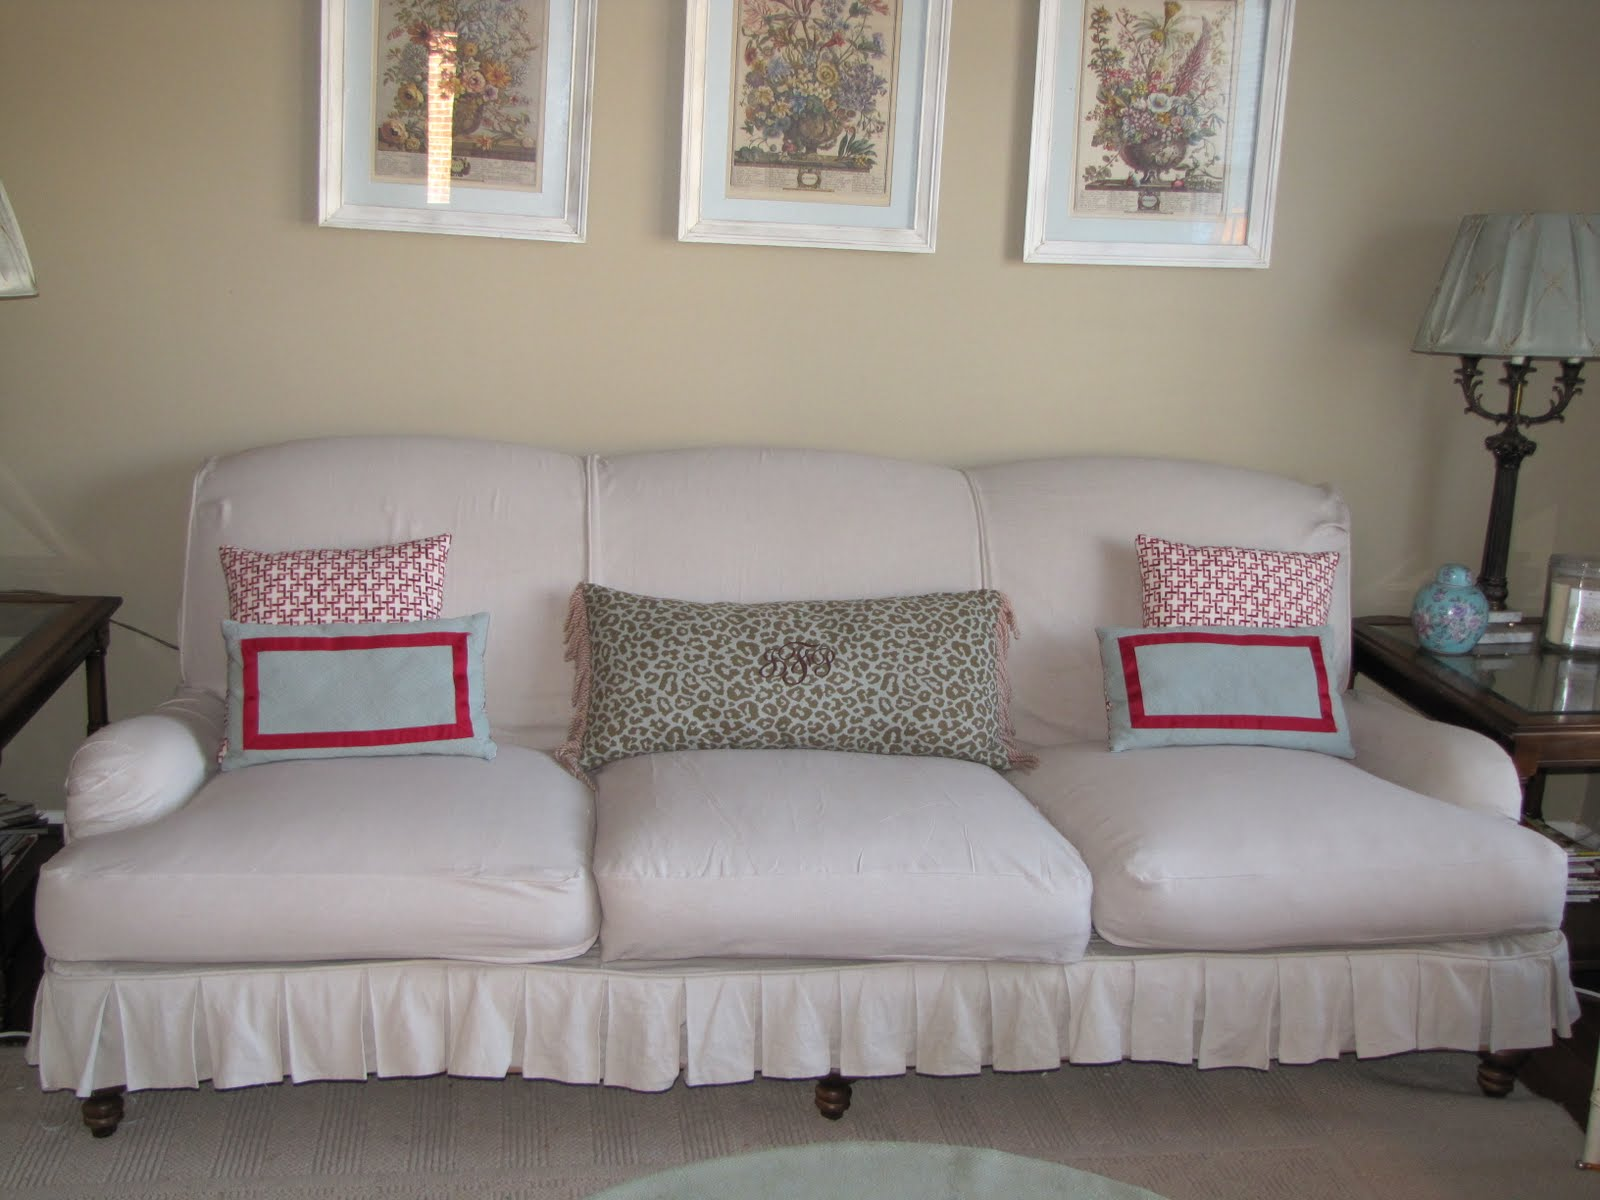 How To Slipcover Sofas And Chairs